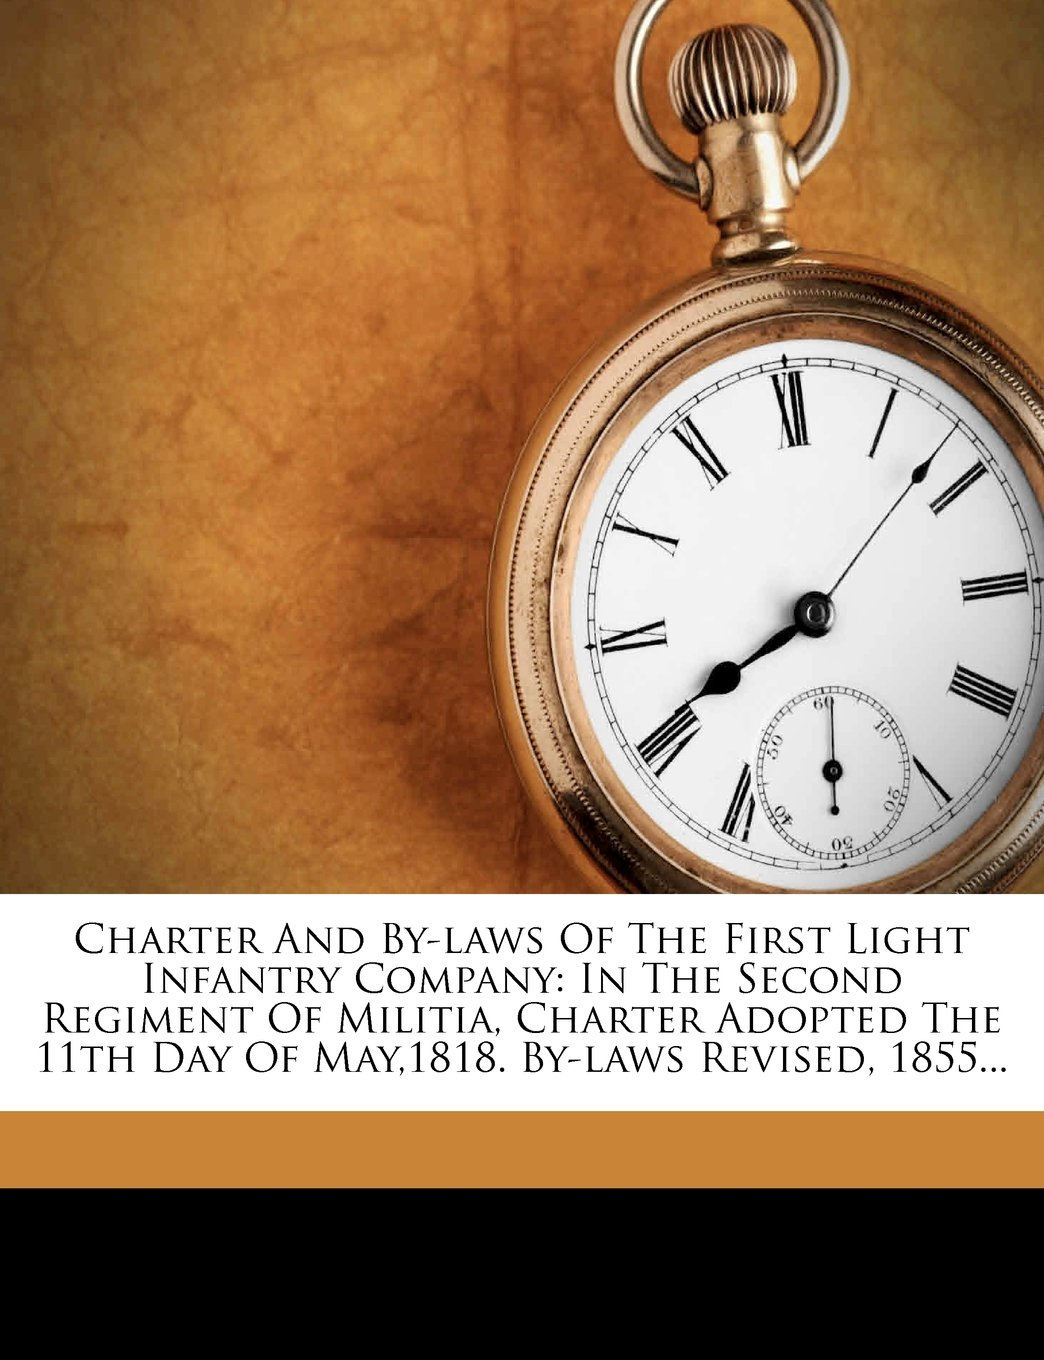 Read Online Charter And By-laws Of The First Light Infantry Company: In The Second Regiment Of Militia, Charter Adopted The 11th Day Of May,1818. By-laws Revised, 1855... pdf